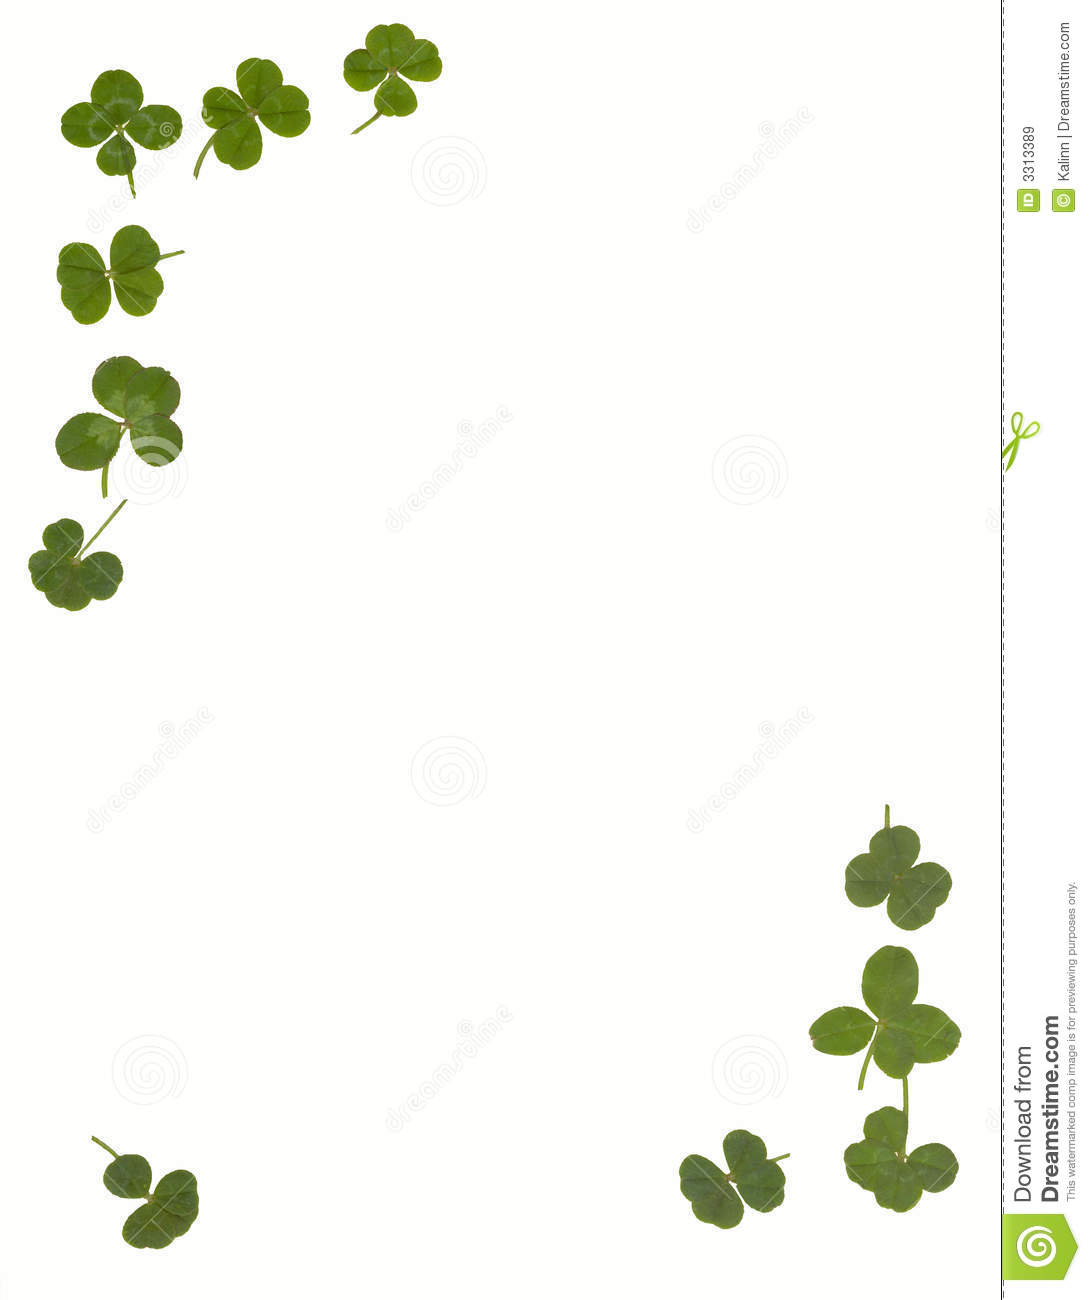 4 Leaf Clover Stationary Royalty Free Stock Images Image